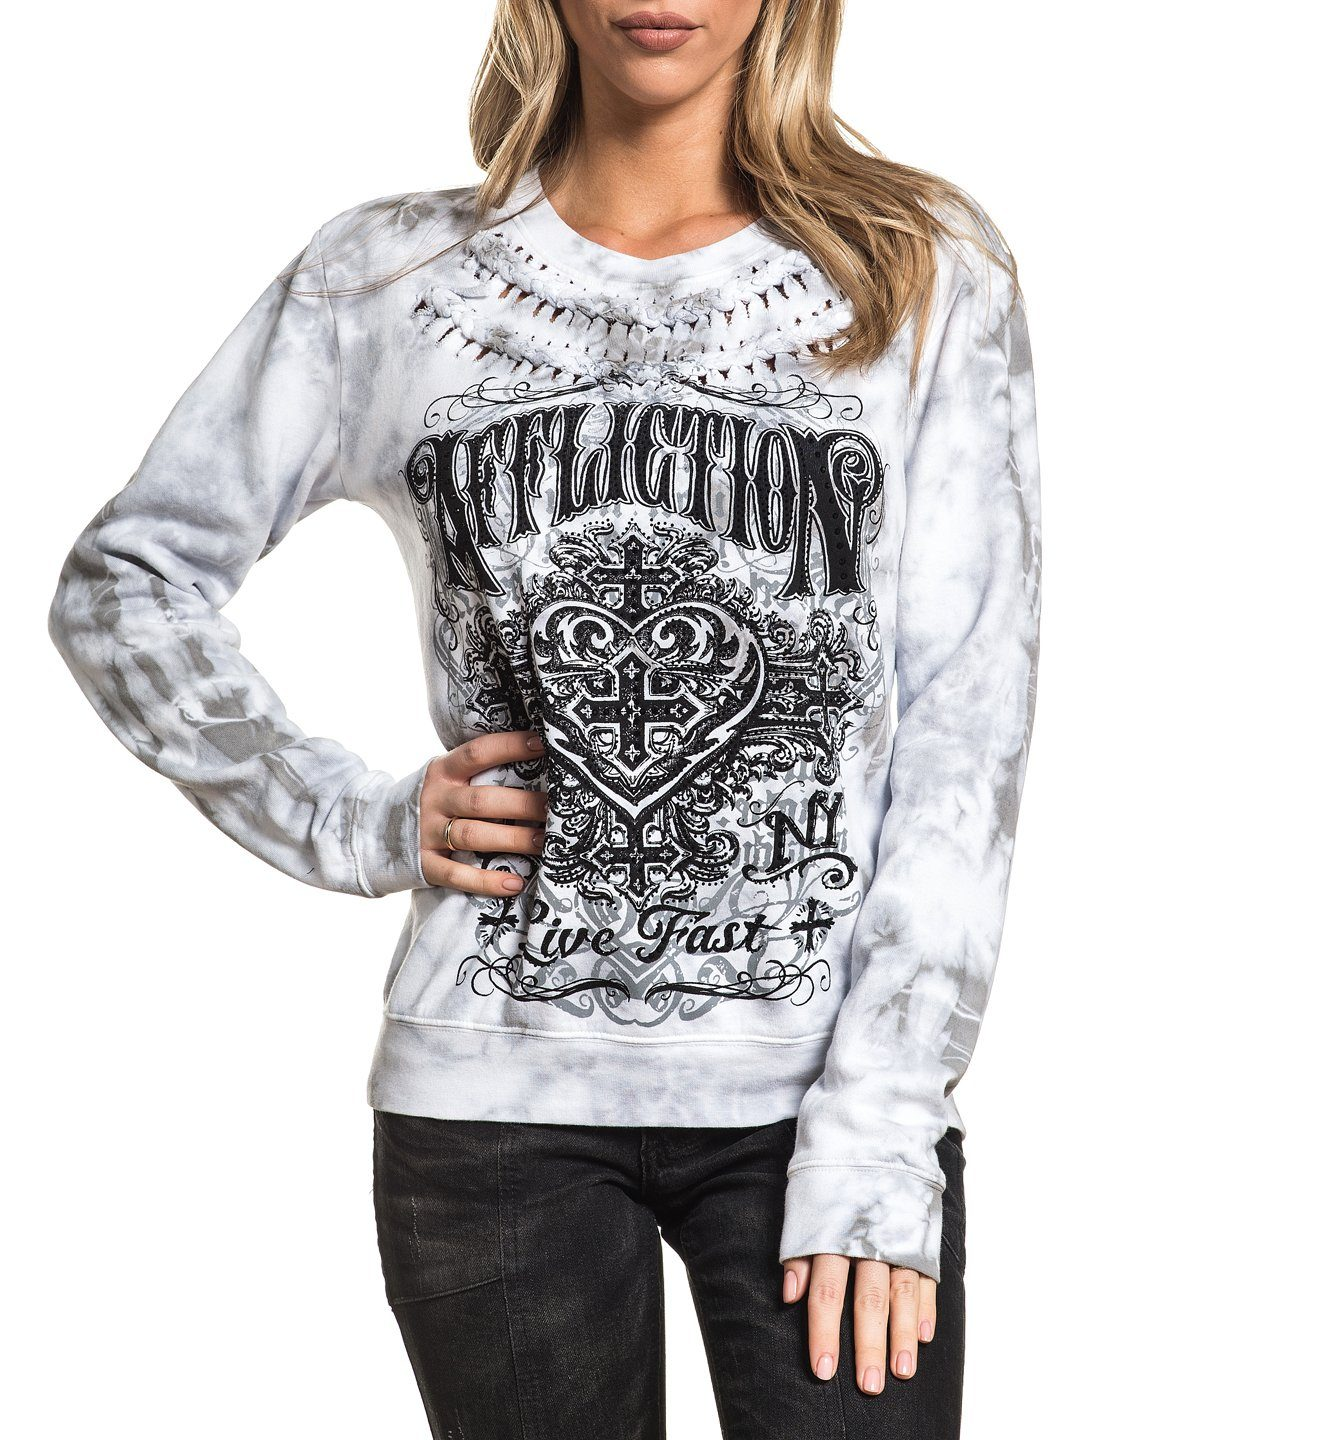 Ink - Womens Sweaters And Sweatshirts - Affliction Clothing